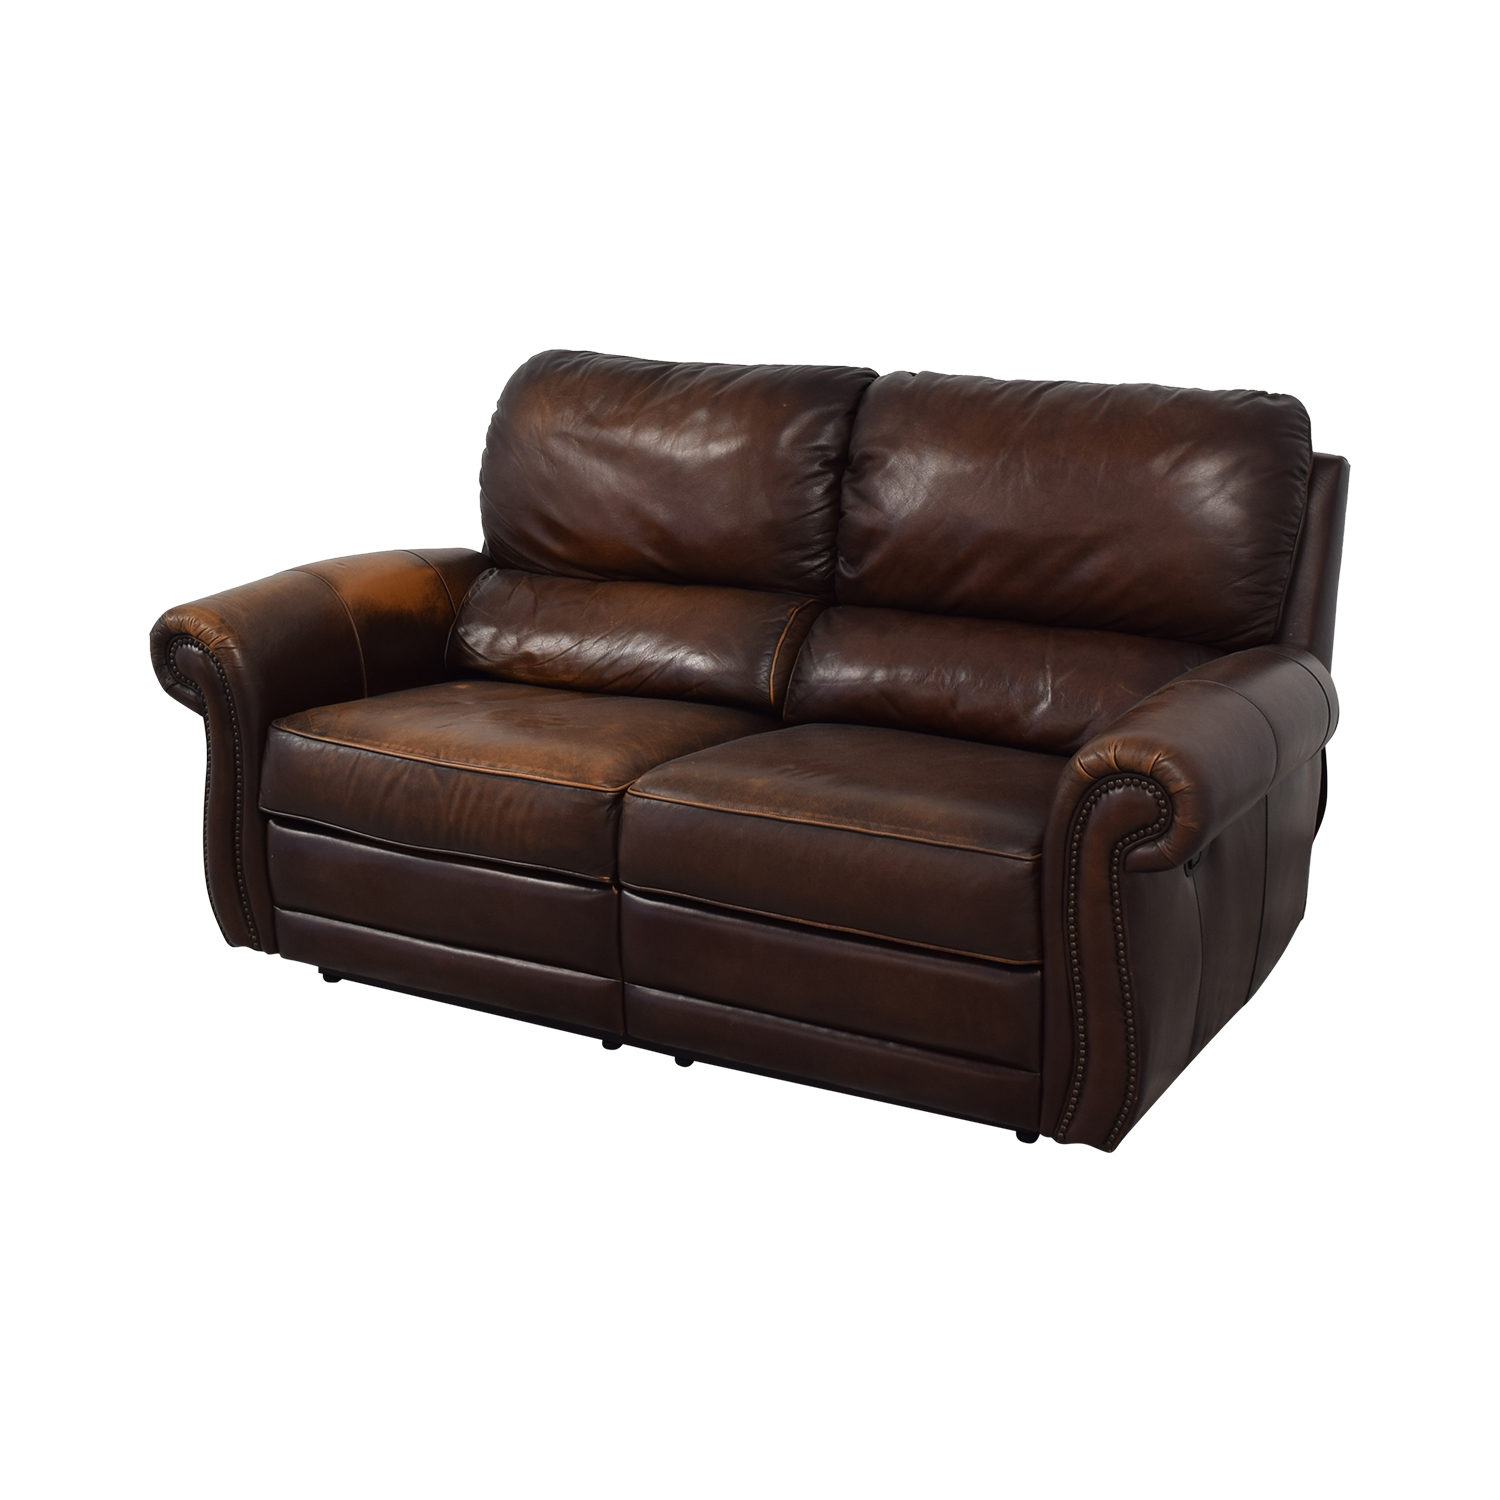 Raymour & Flanigan Raymour & Flanigan Leather Loveseat Recliner nyc